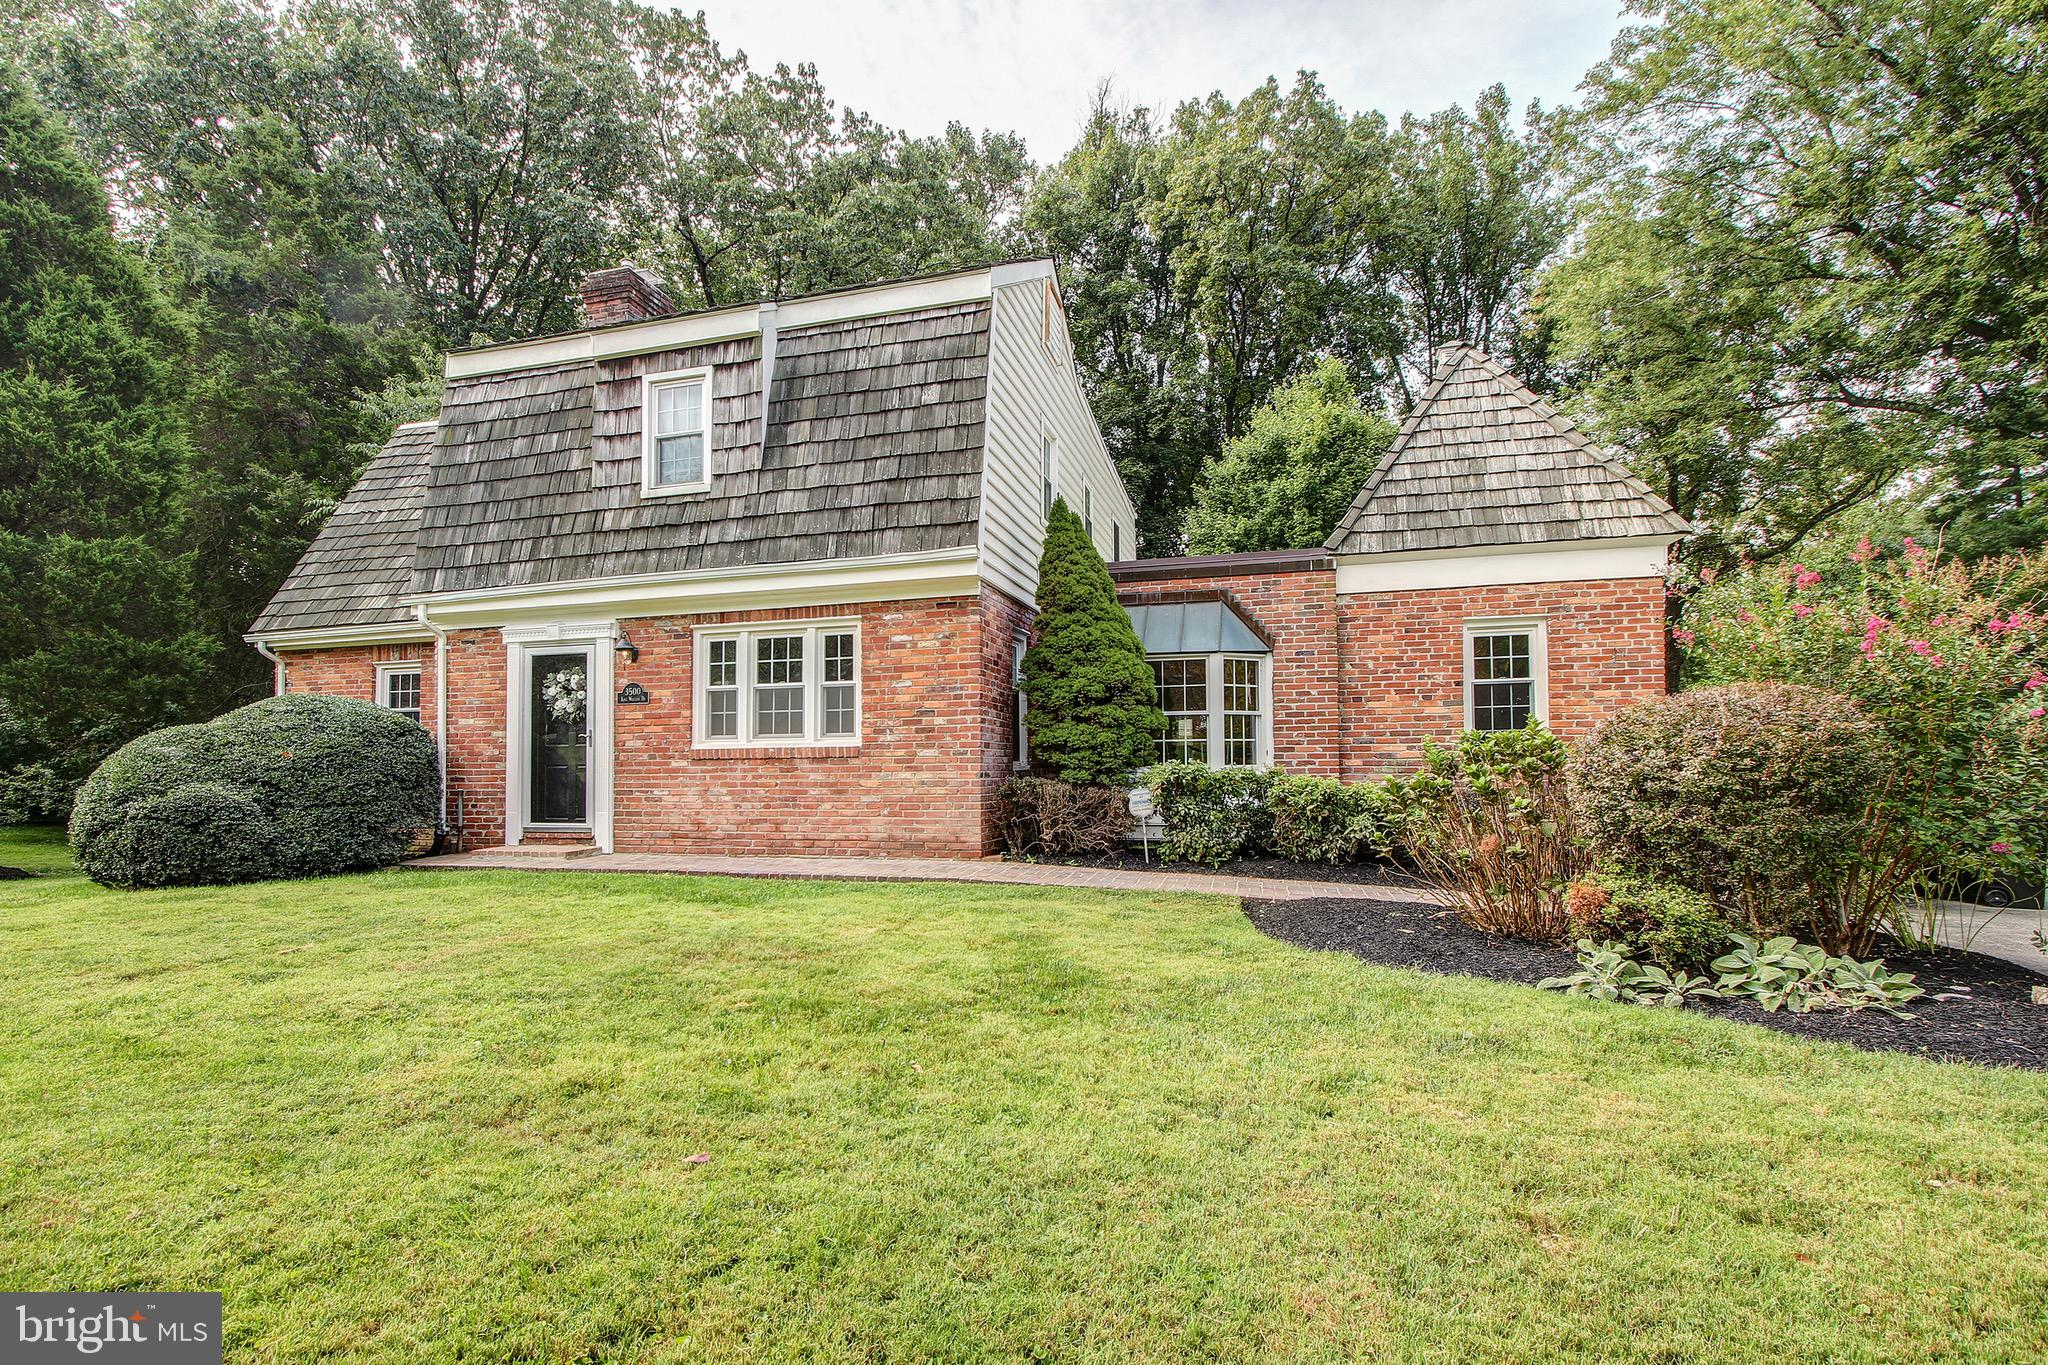 3500 KING WILLIAM DRIVE, OLNEY, MD 20832